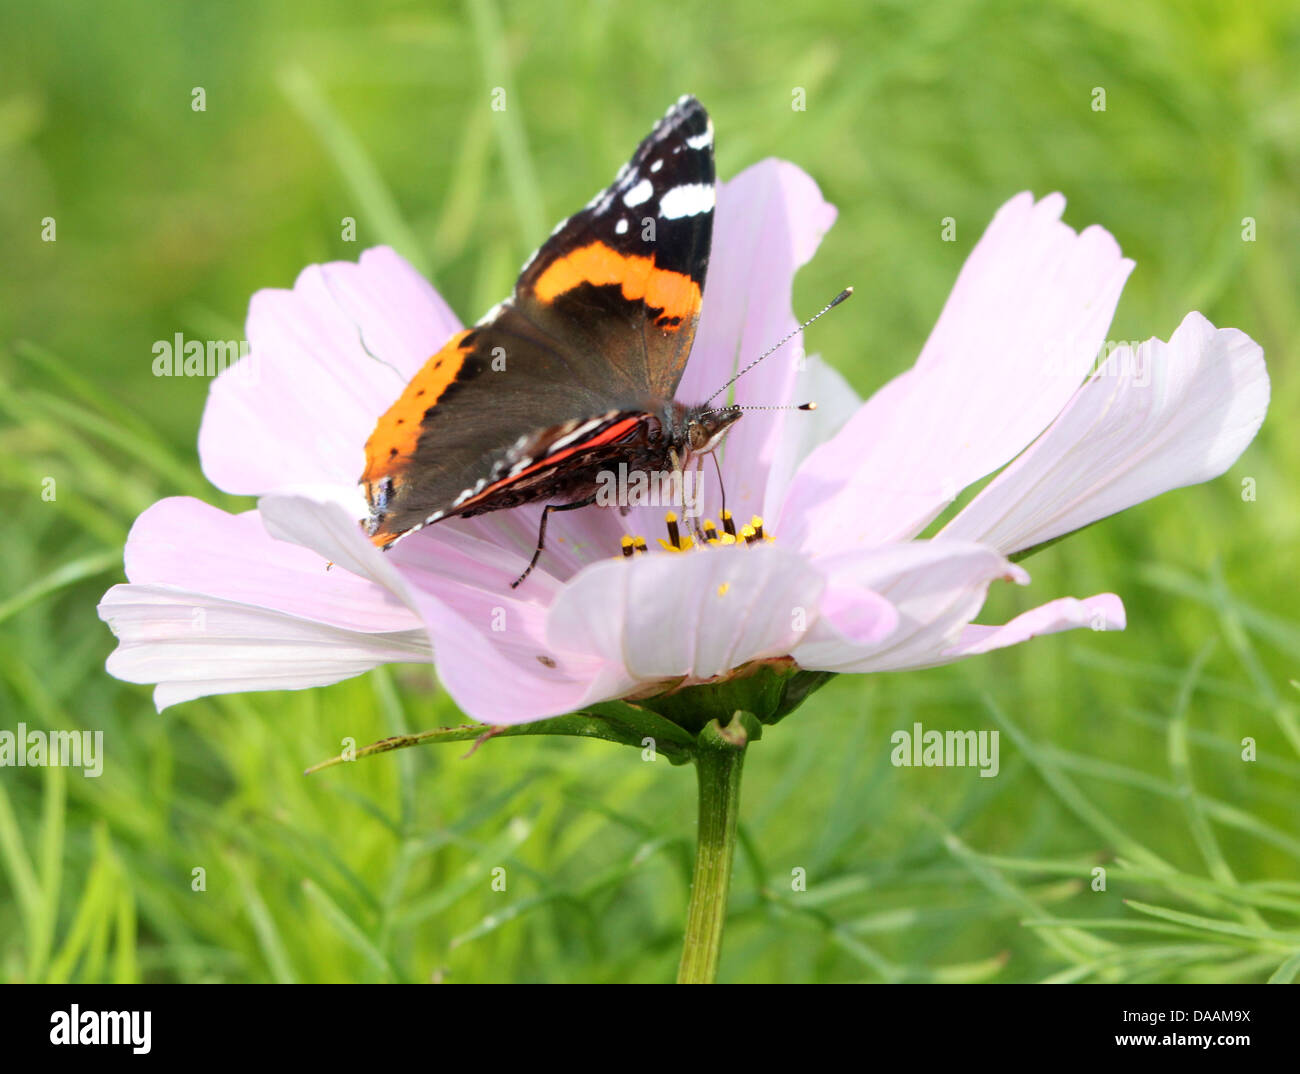 Red admiral butterfly (vanessa atalanta) feeding on a large pink flower in summer - Stock Image